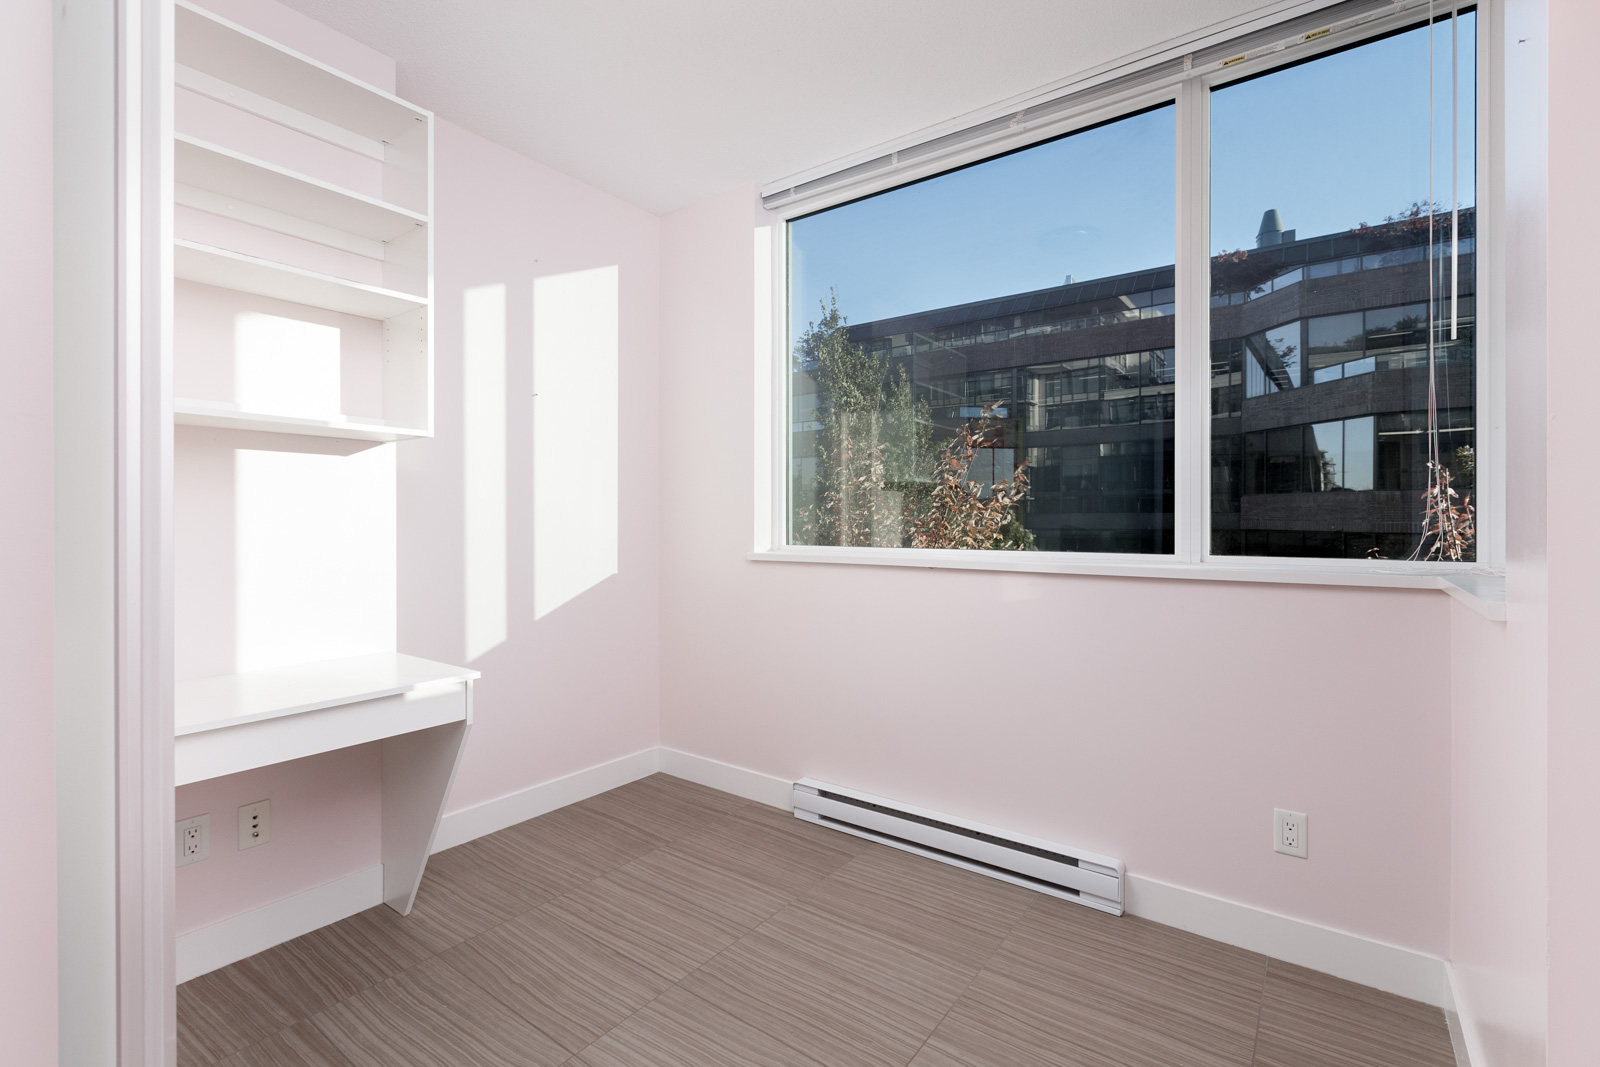 Bedroom with sunlight coming in from window in Kits360 condo rental